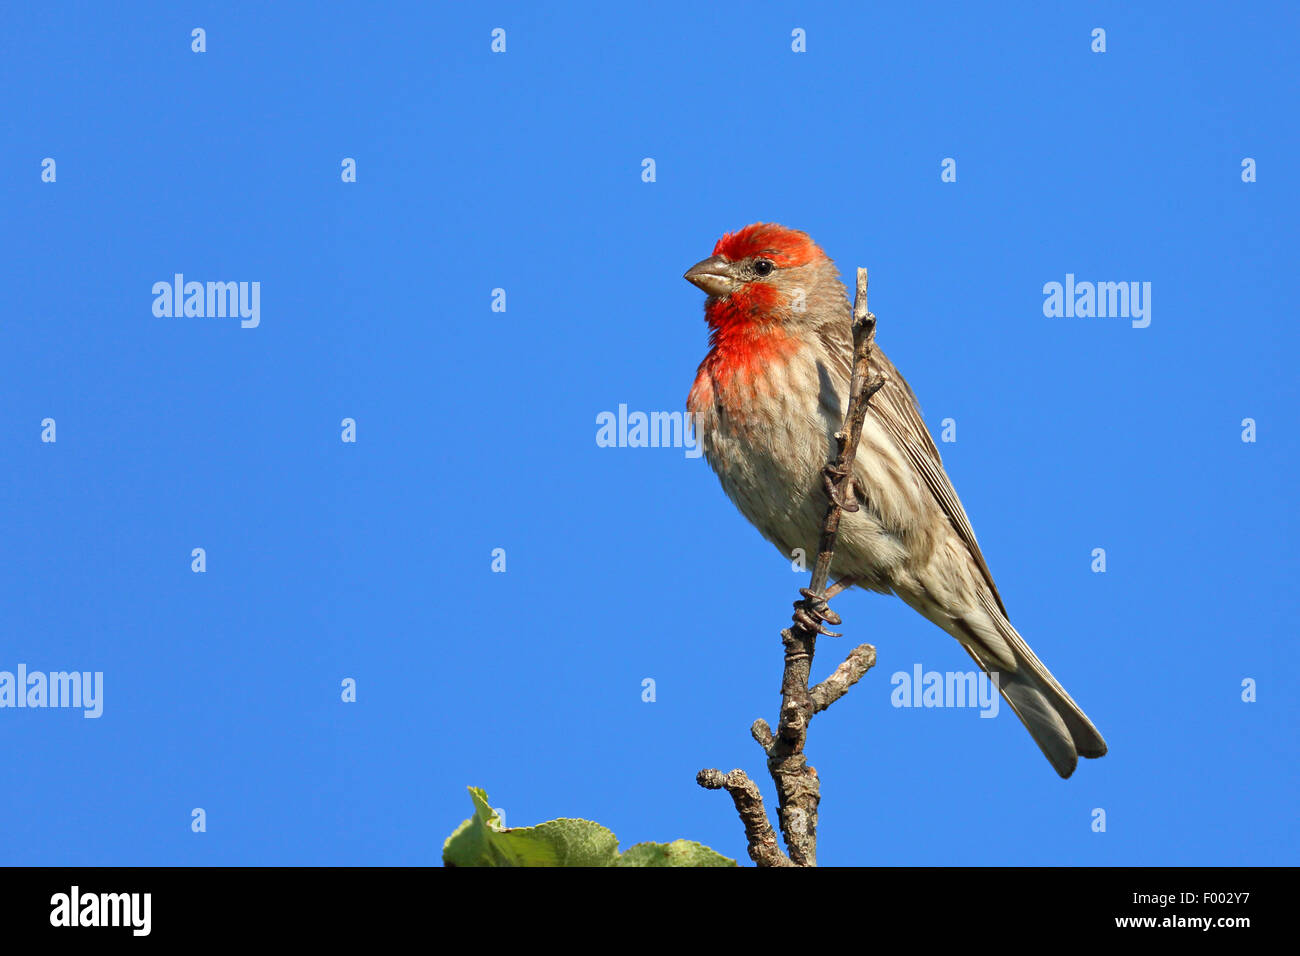 House finch (Carpodacus mexicanus), male sitting on a bush, Canada, Vancouver Island, Victoria - Stock Image